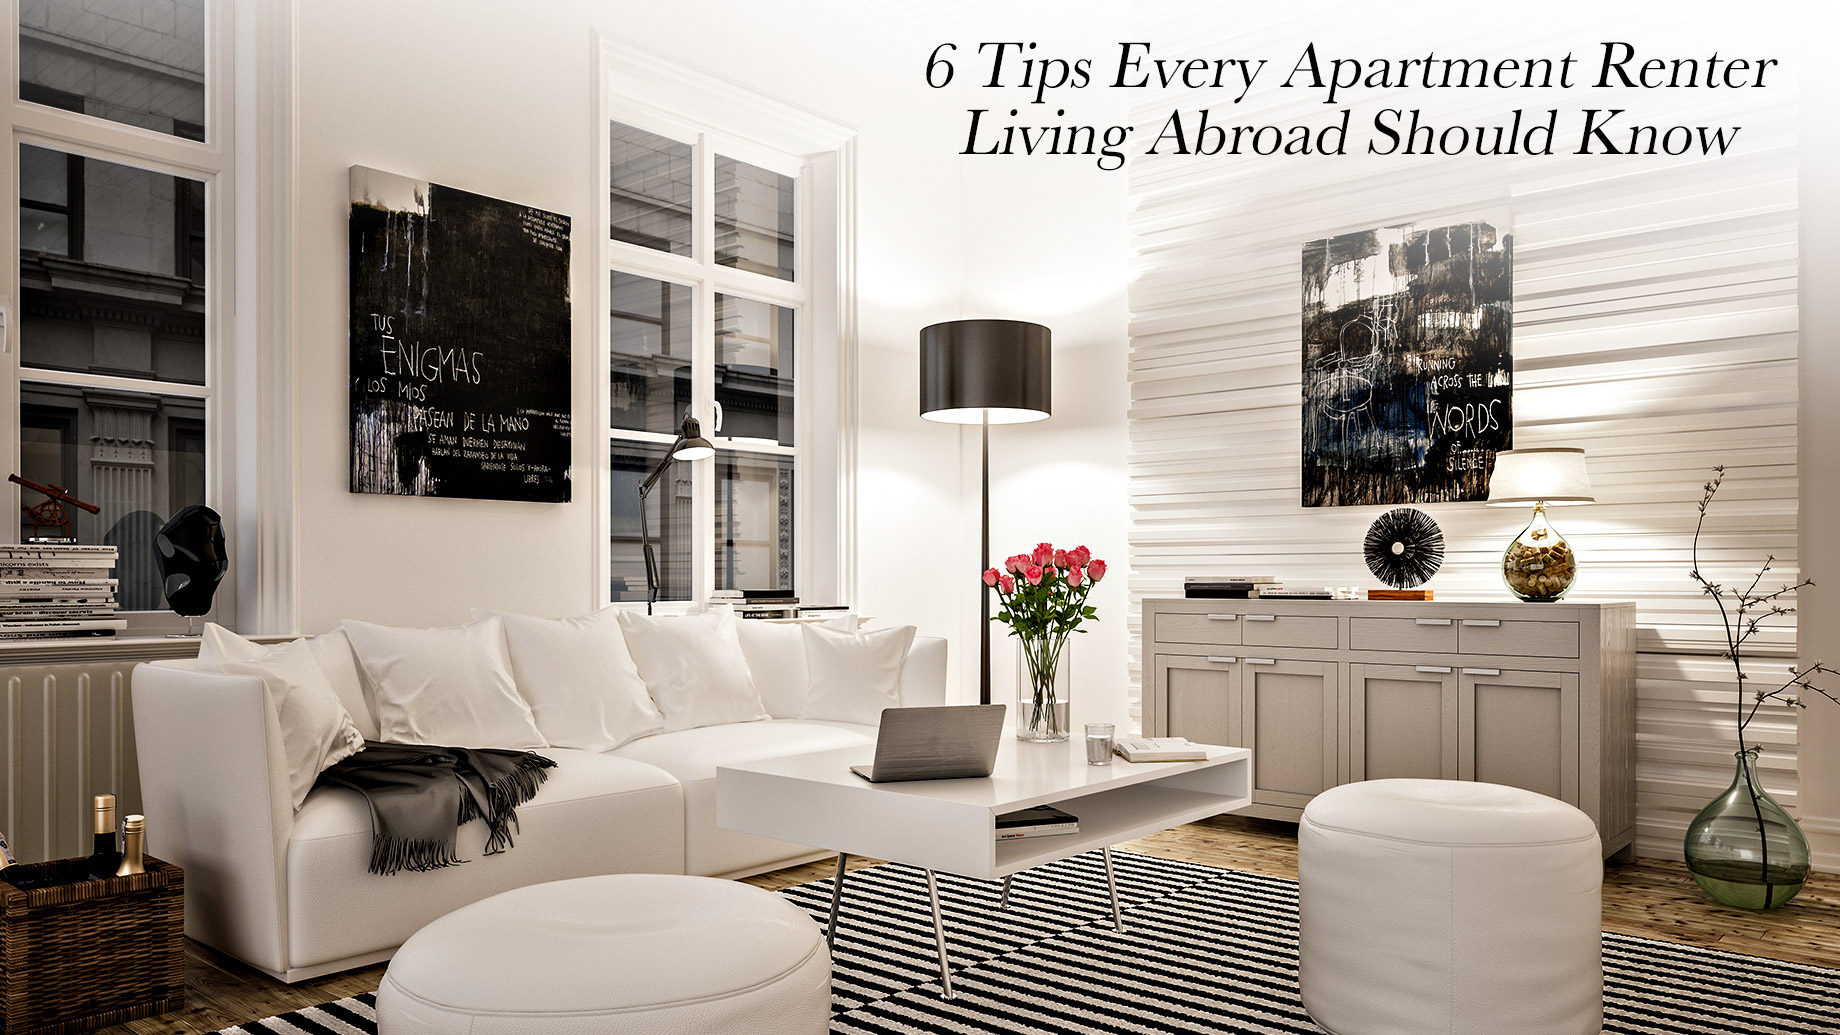 6 Tips Every Apartment Renter Living Abroad Should Know